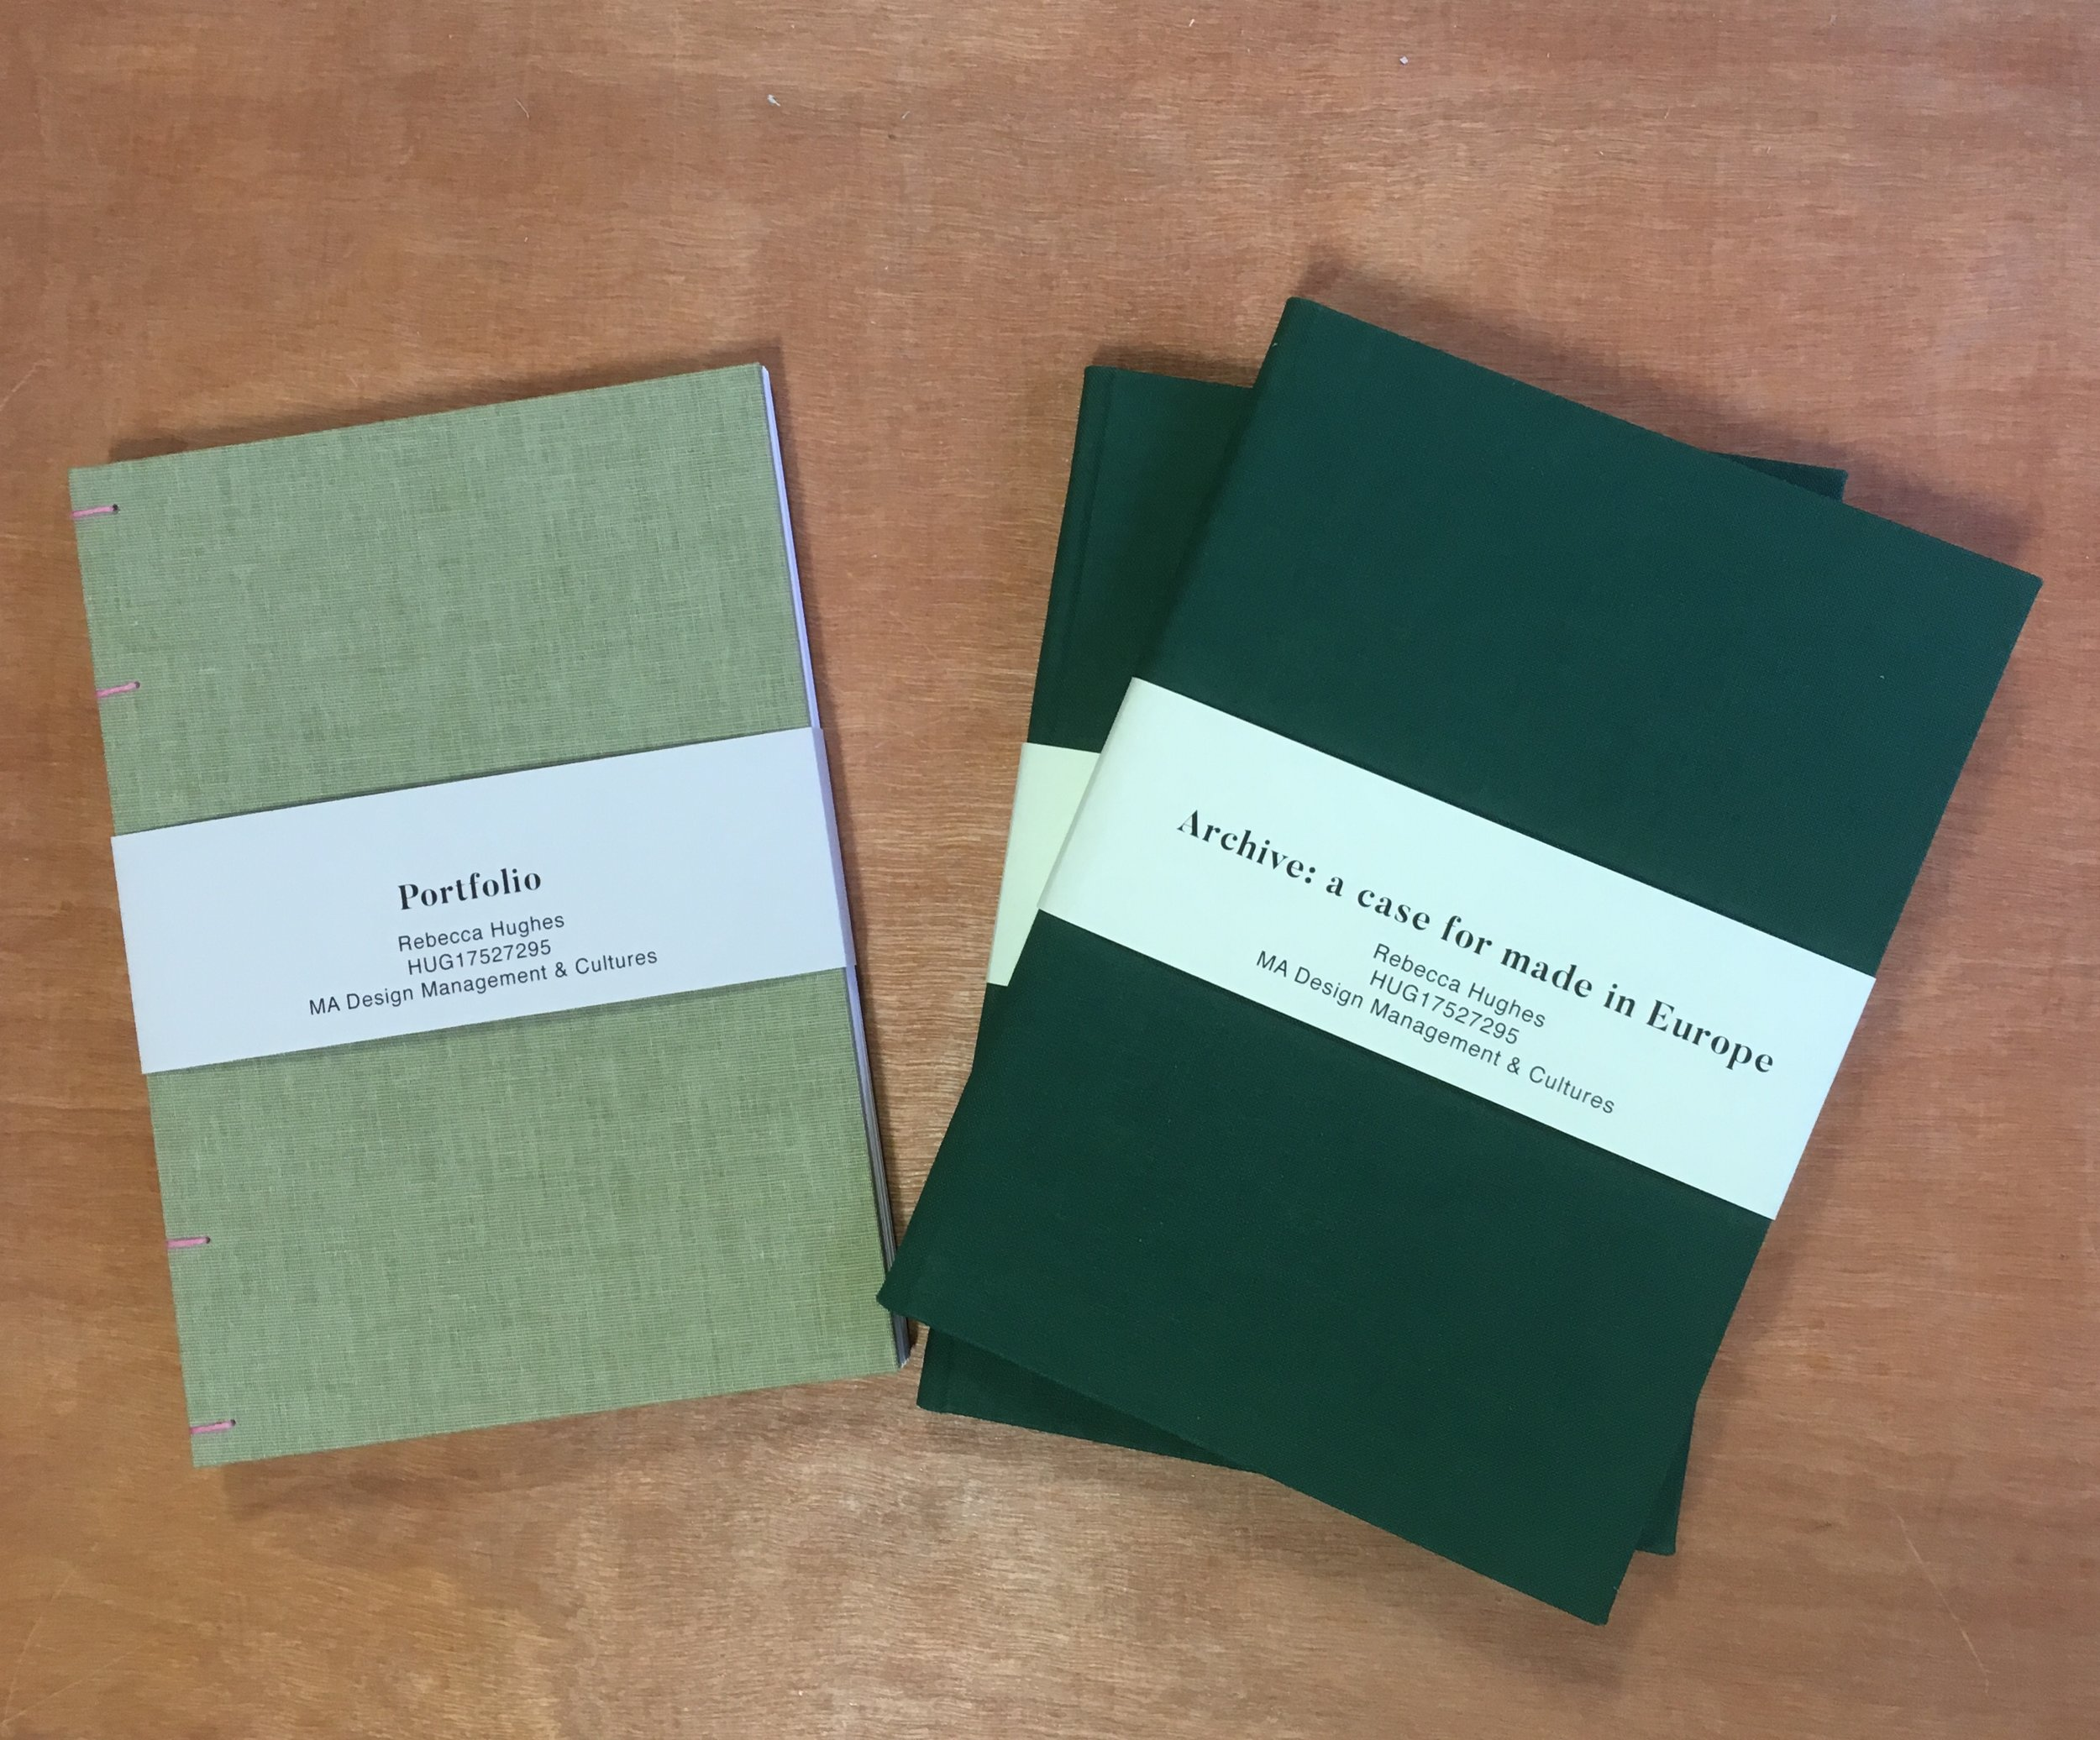 bespoke hard cover books